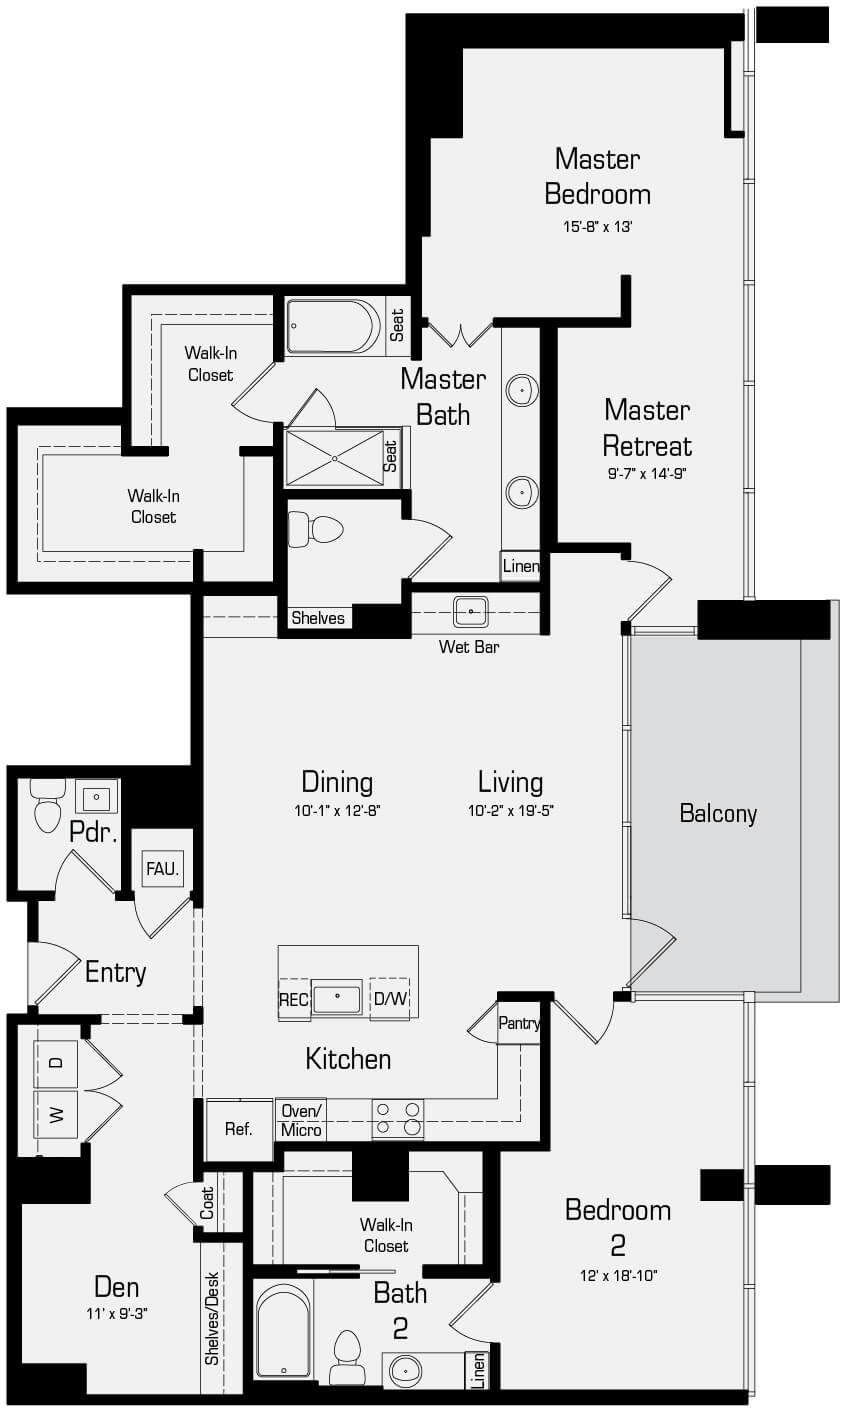 Plan P1 - 2 Bedroom Penthouse, 2.5 Bath